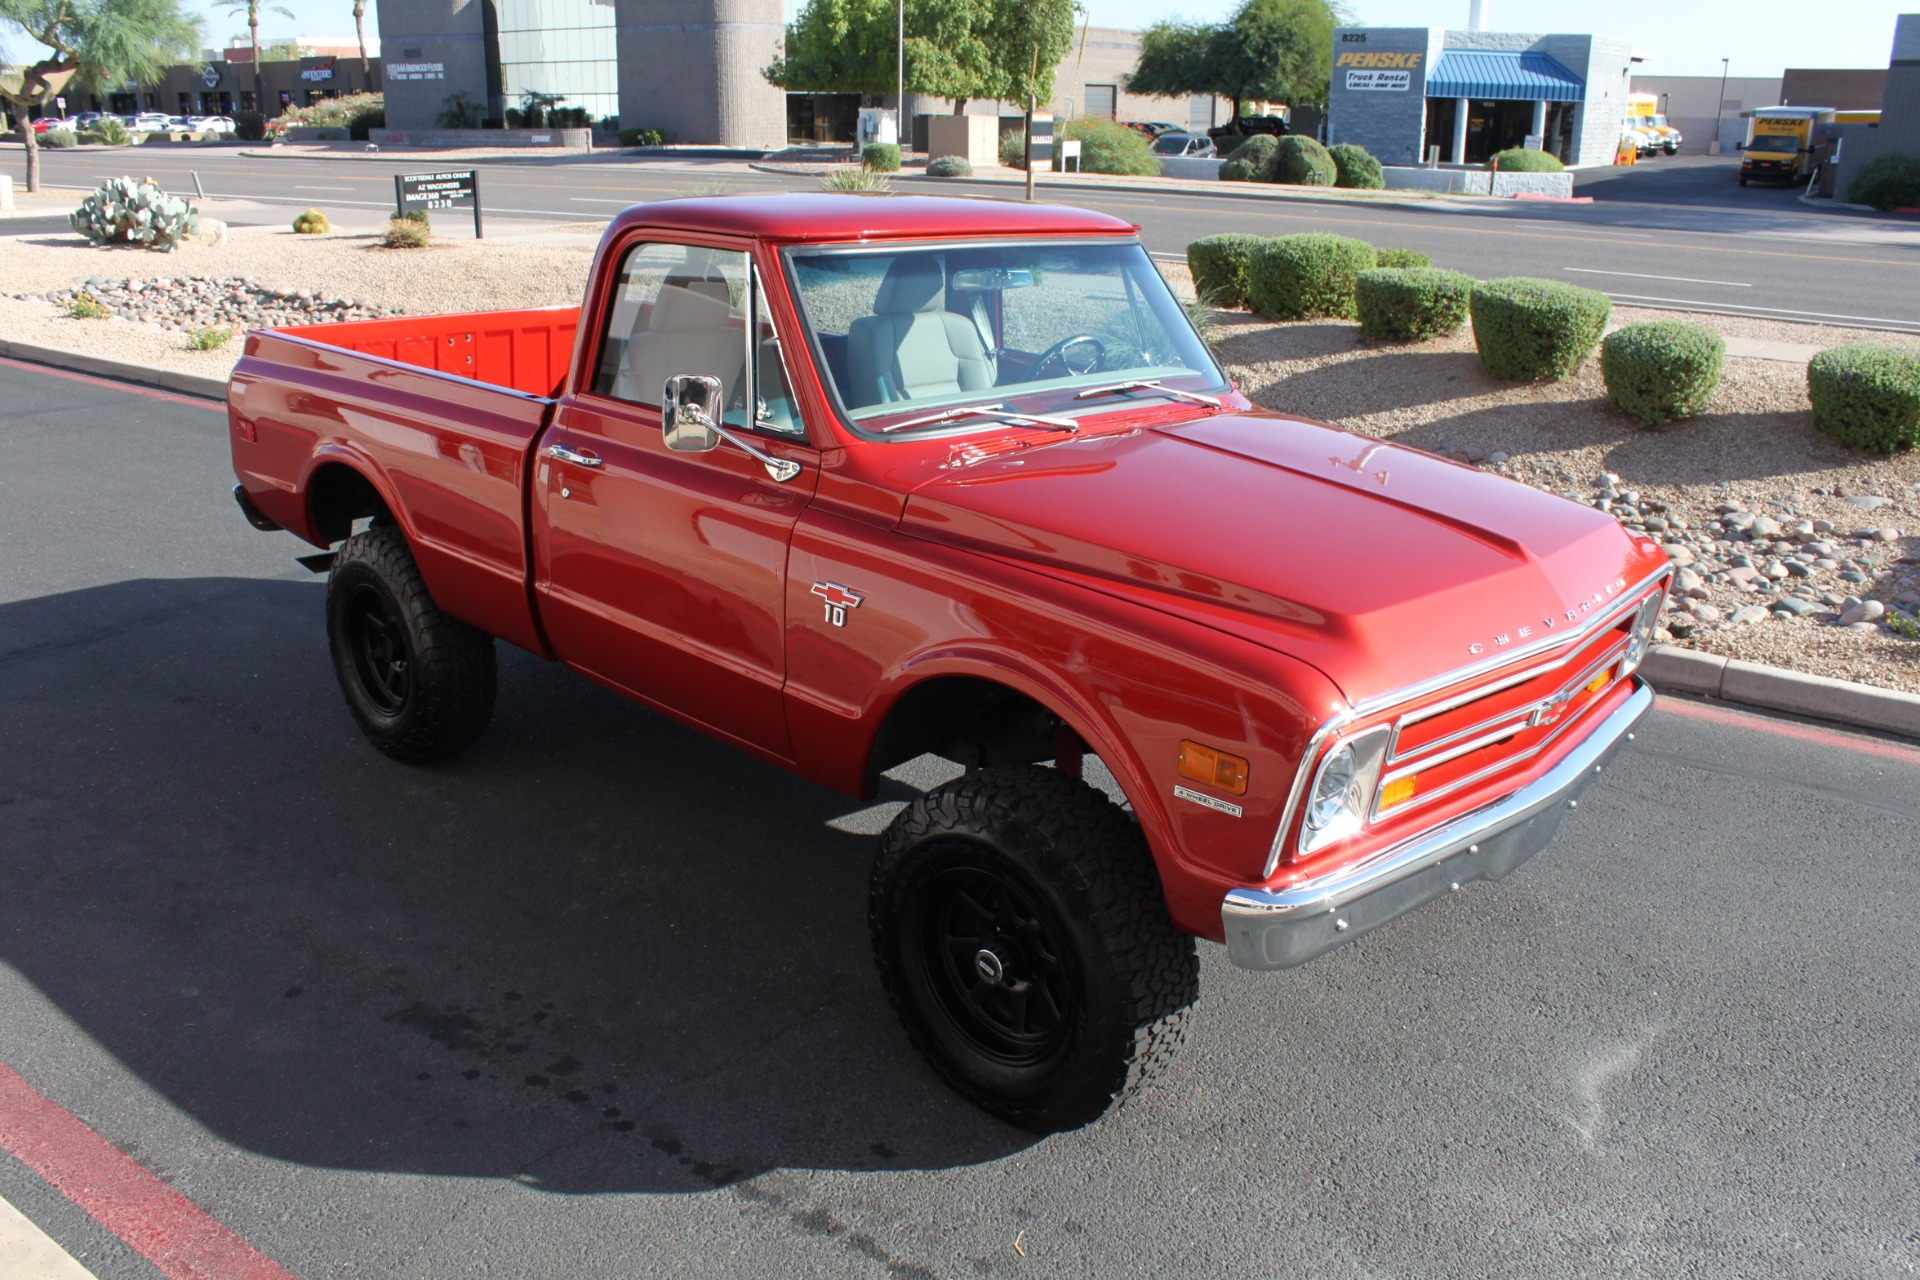 Used-1968-Chevrolet-K10-(C10)-1/2-Ton-Short-Bed-4X4-Ferrari